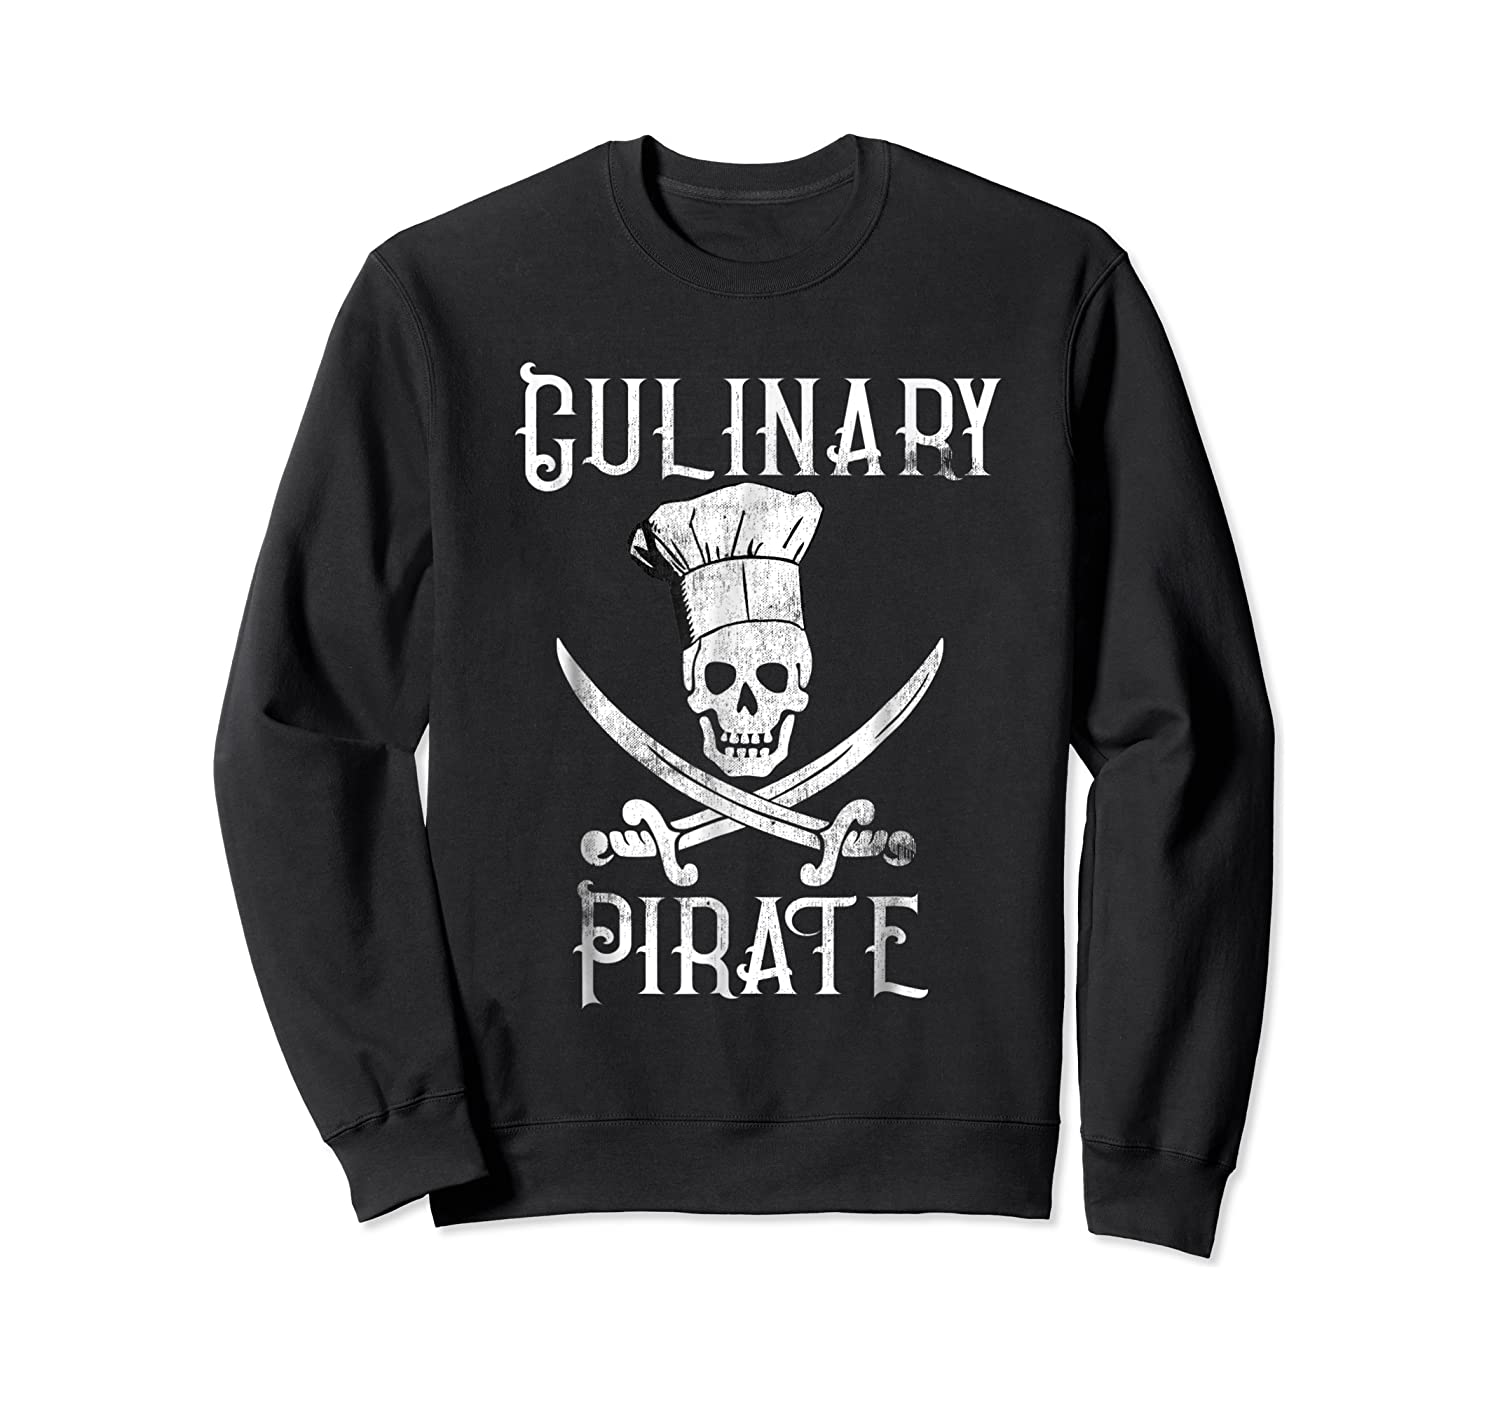 Fun Culinary T-shirt Vintage Culinary Pirate Skull Chef Hat Crewneck Sweater